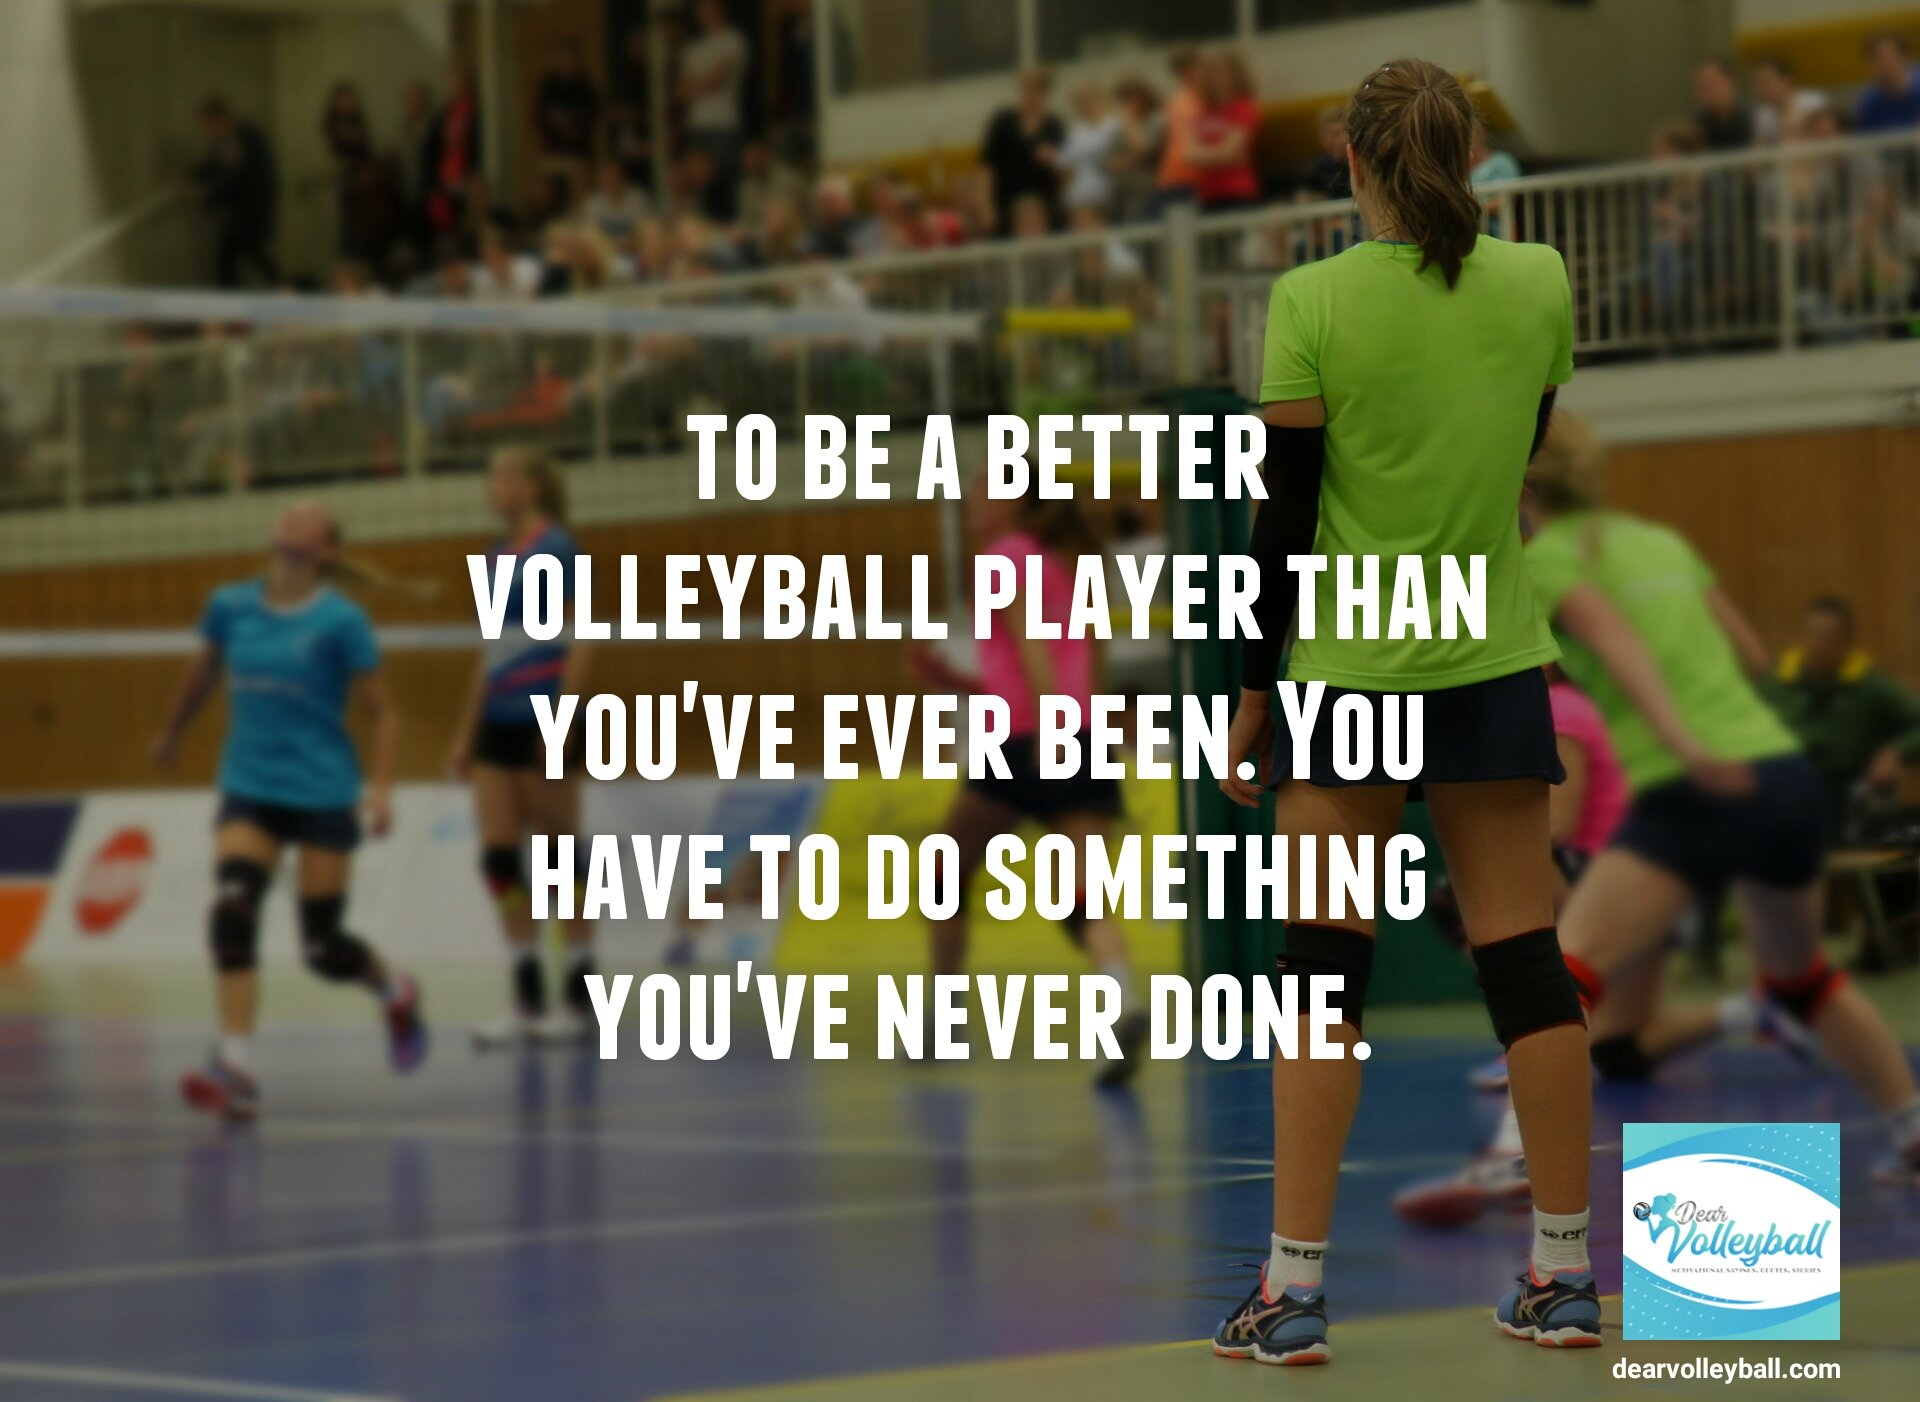 To be a better player than you've ever been you have to do something you've never done and 75 other volleyball inspirational quotes on Dear Volleyball.com